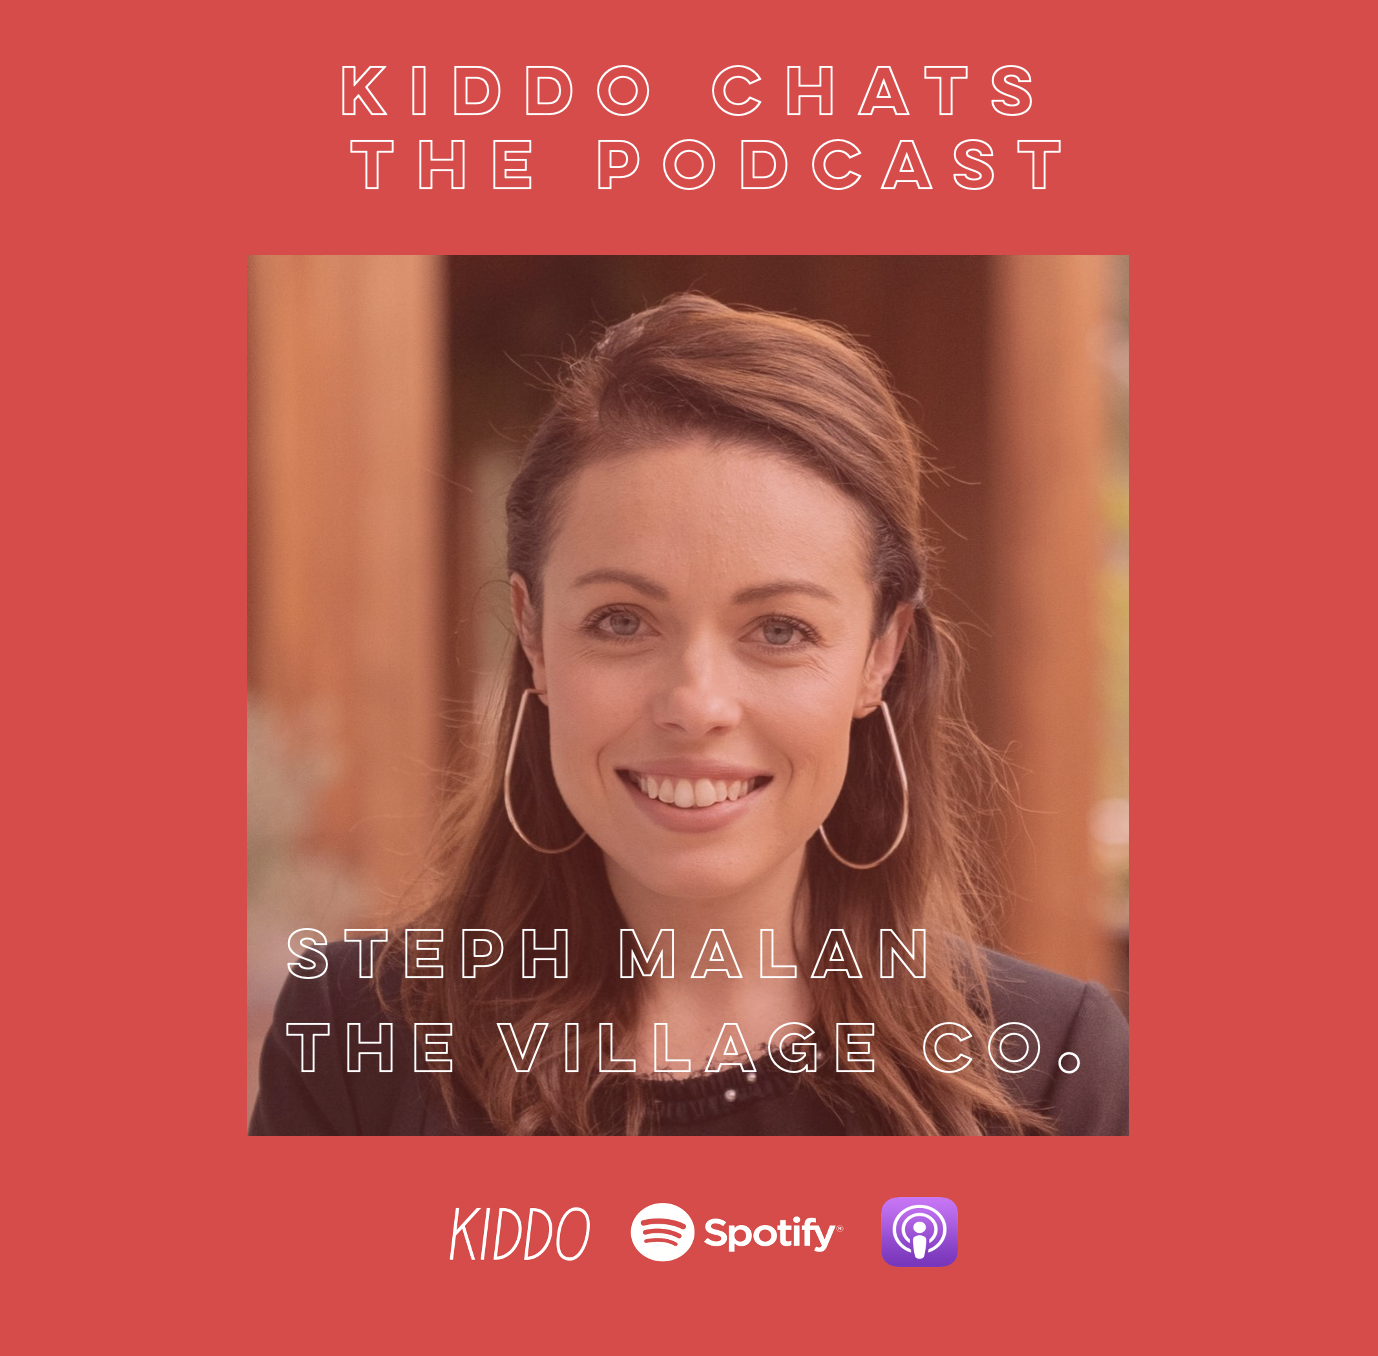 kiddo chats episode 9 steph malan